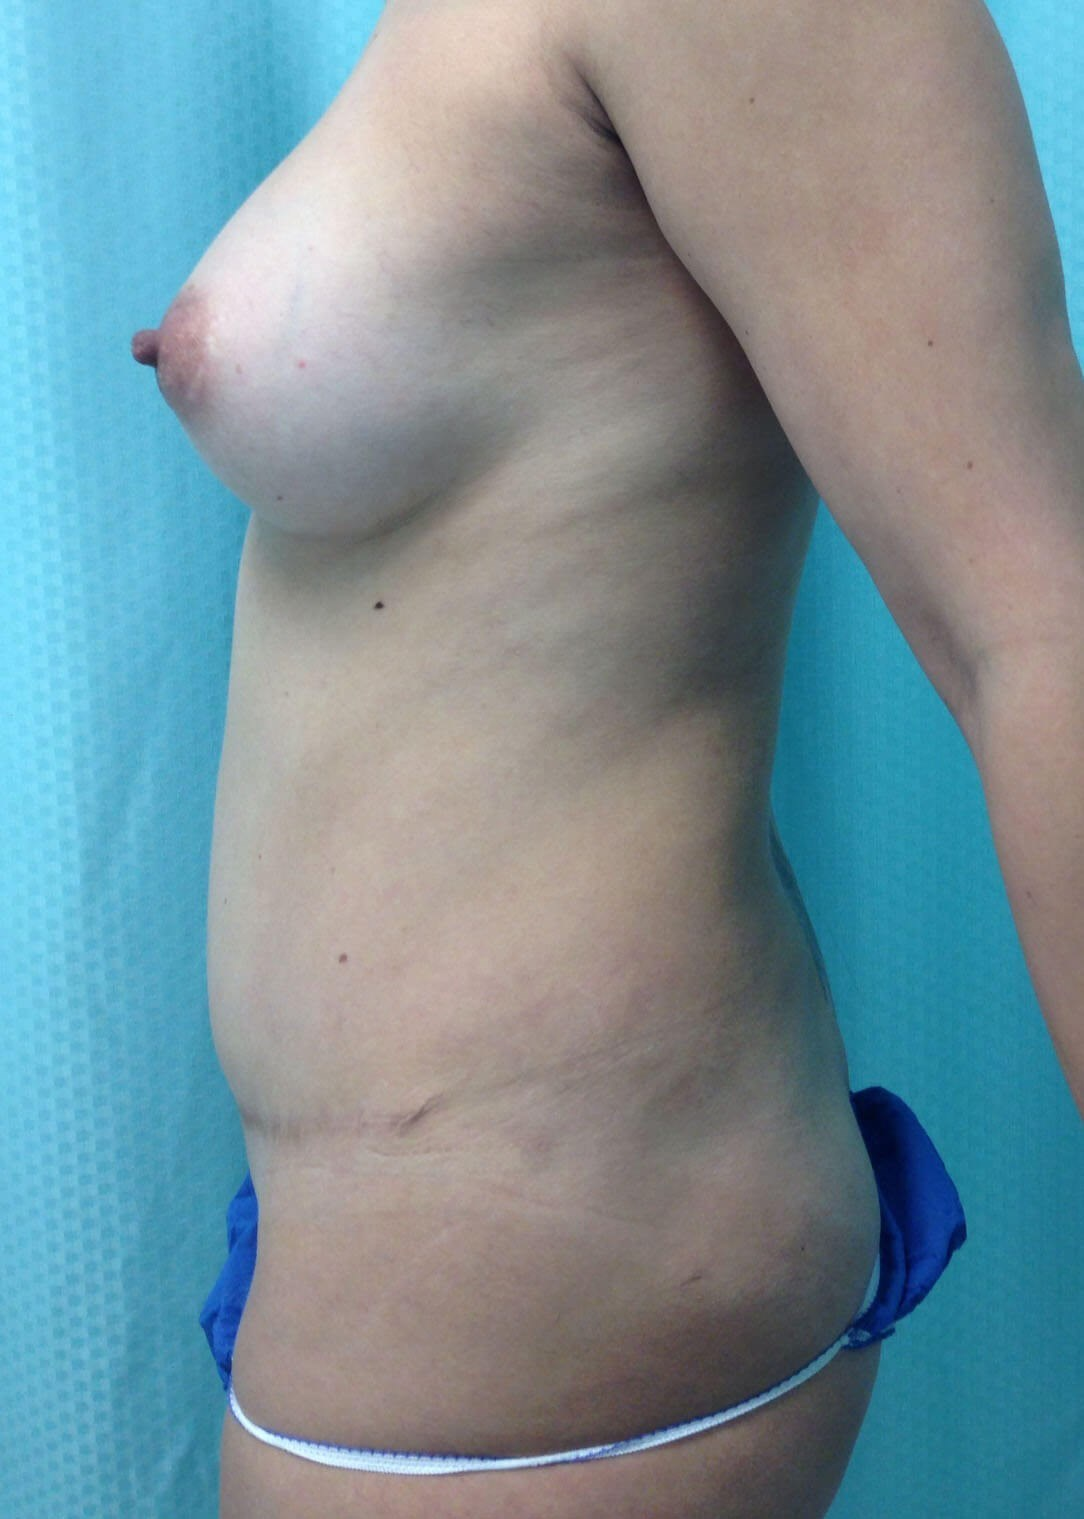 Before Tummy Tuck Left Side - Left Side